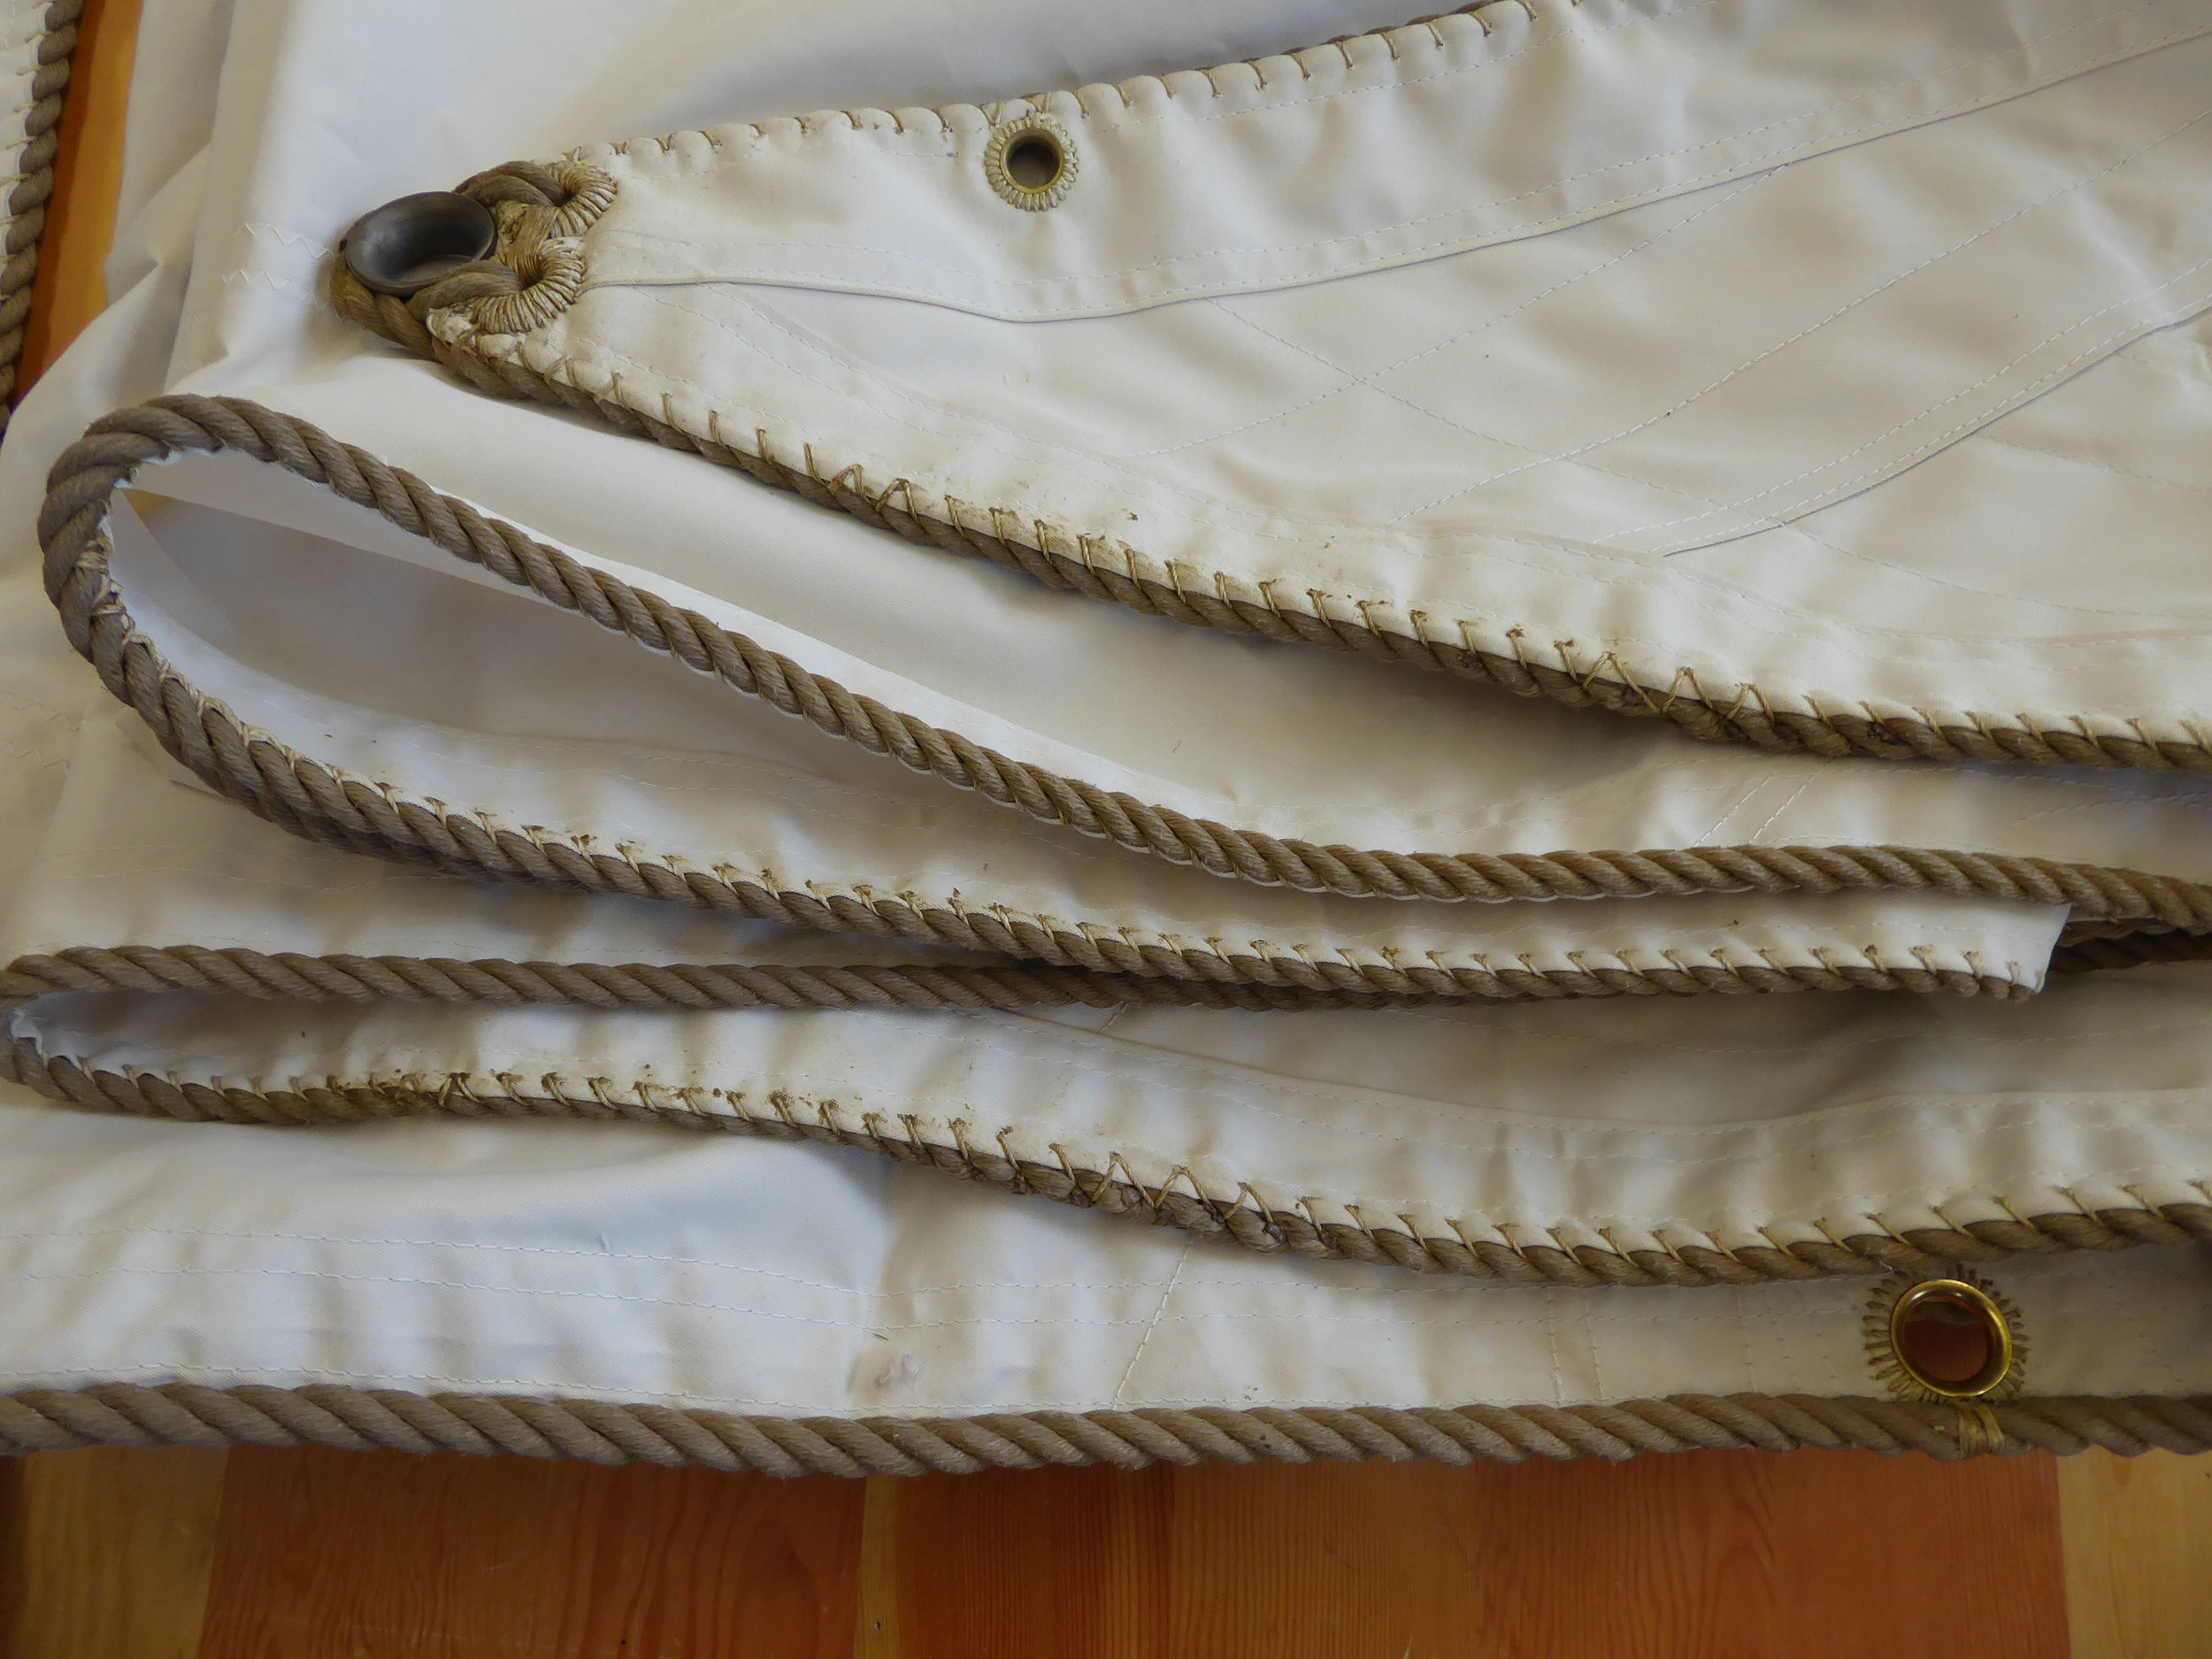 Next we reinforce the edge of the sail by hand sewing rope to all of the edges.